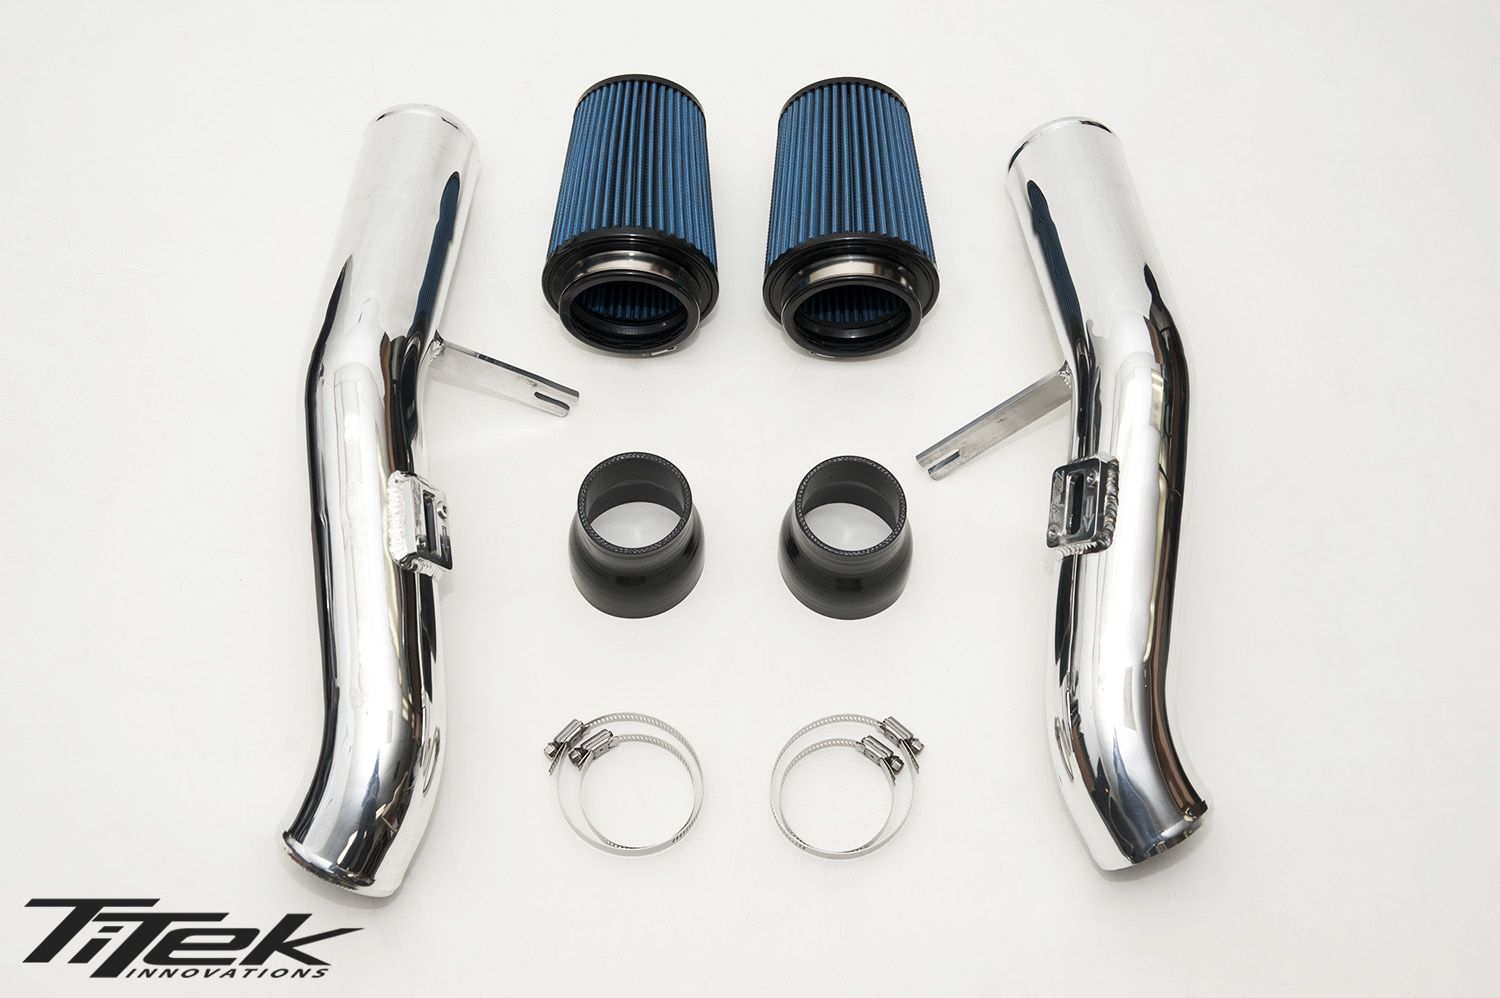 titek_r35_gtr_air_intake_kit_1.jpg